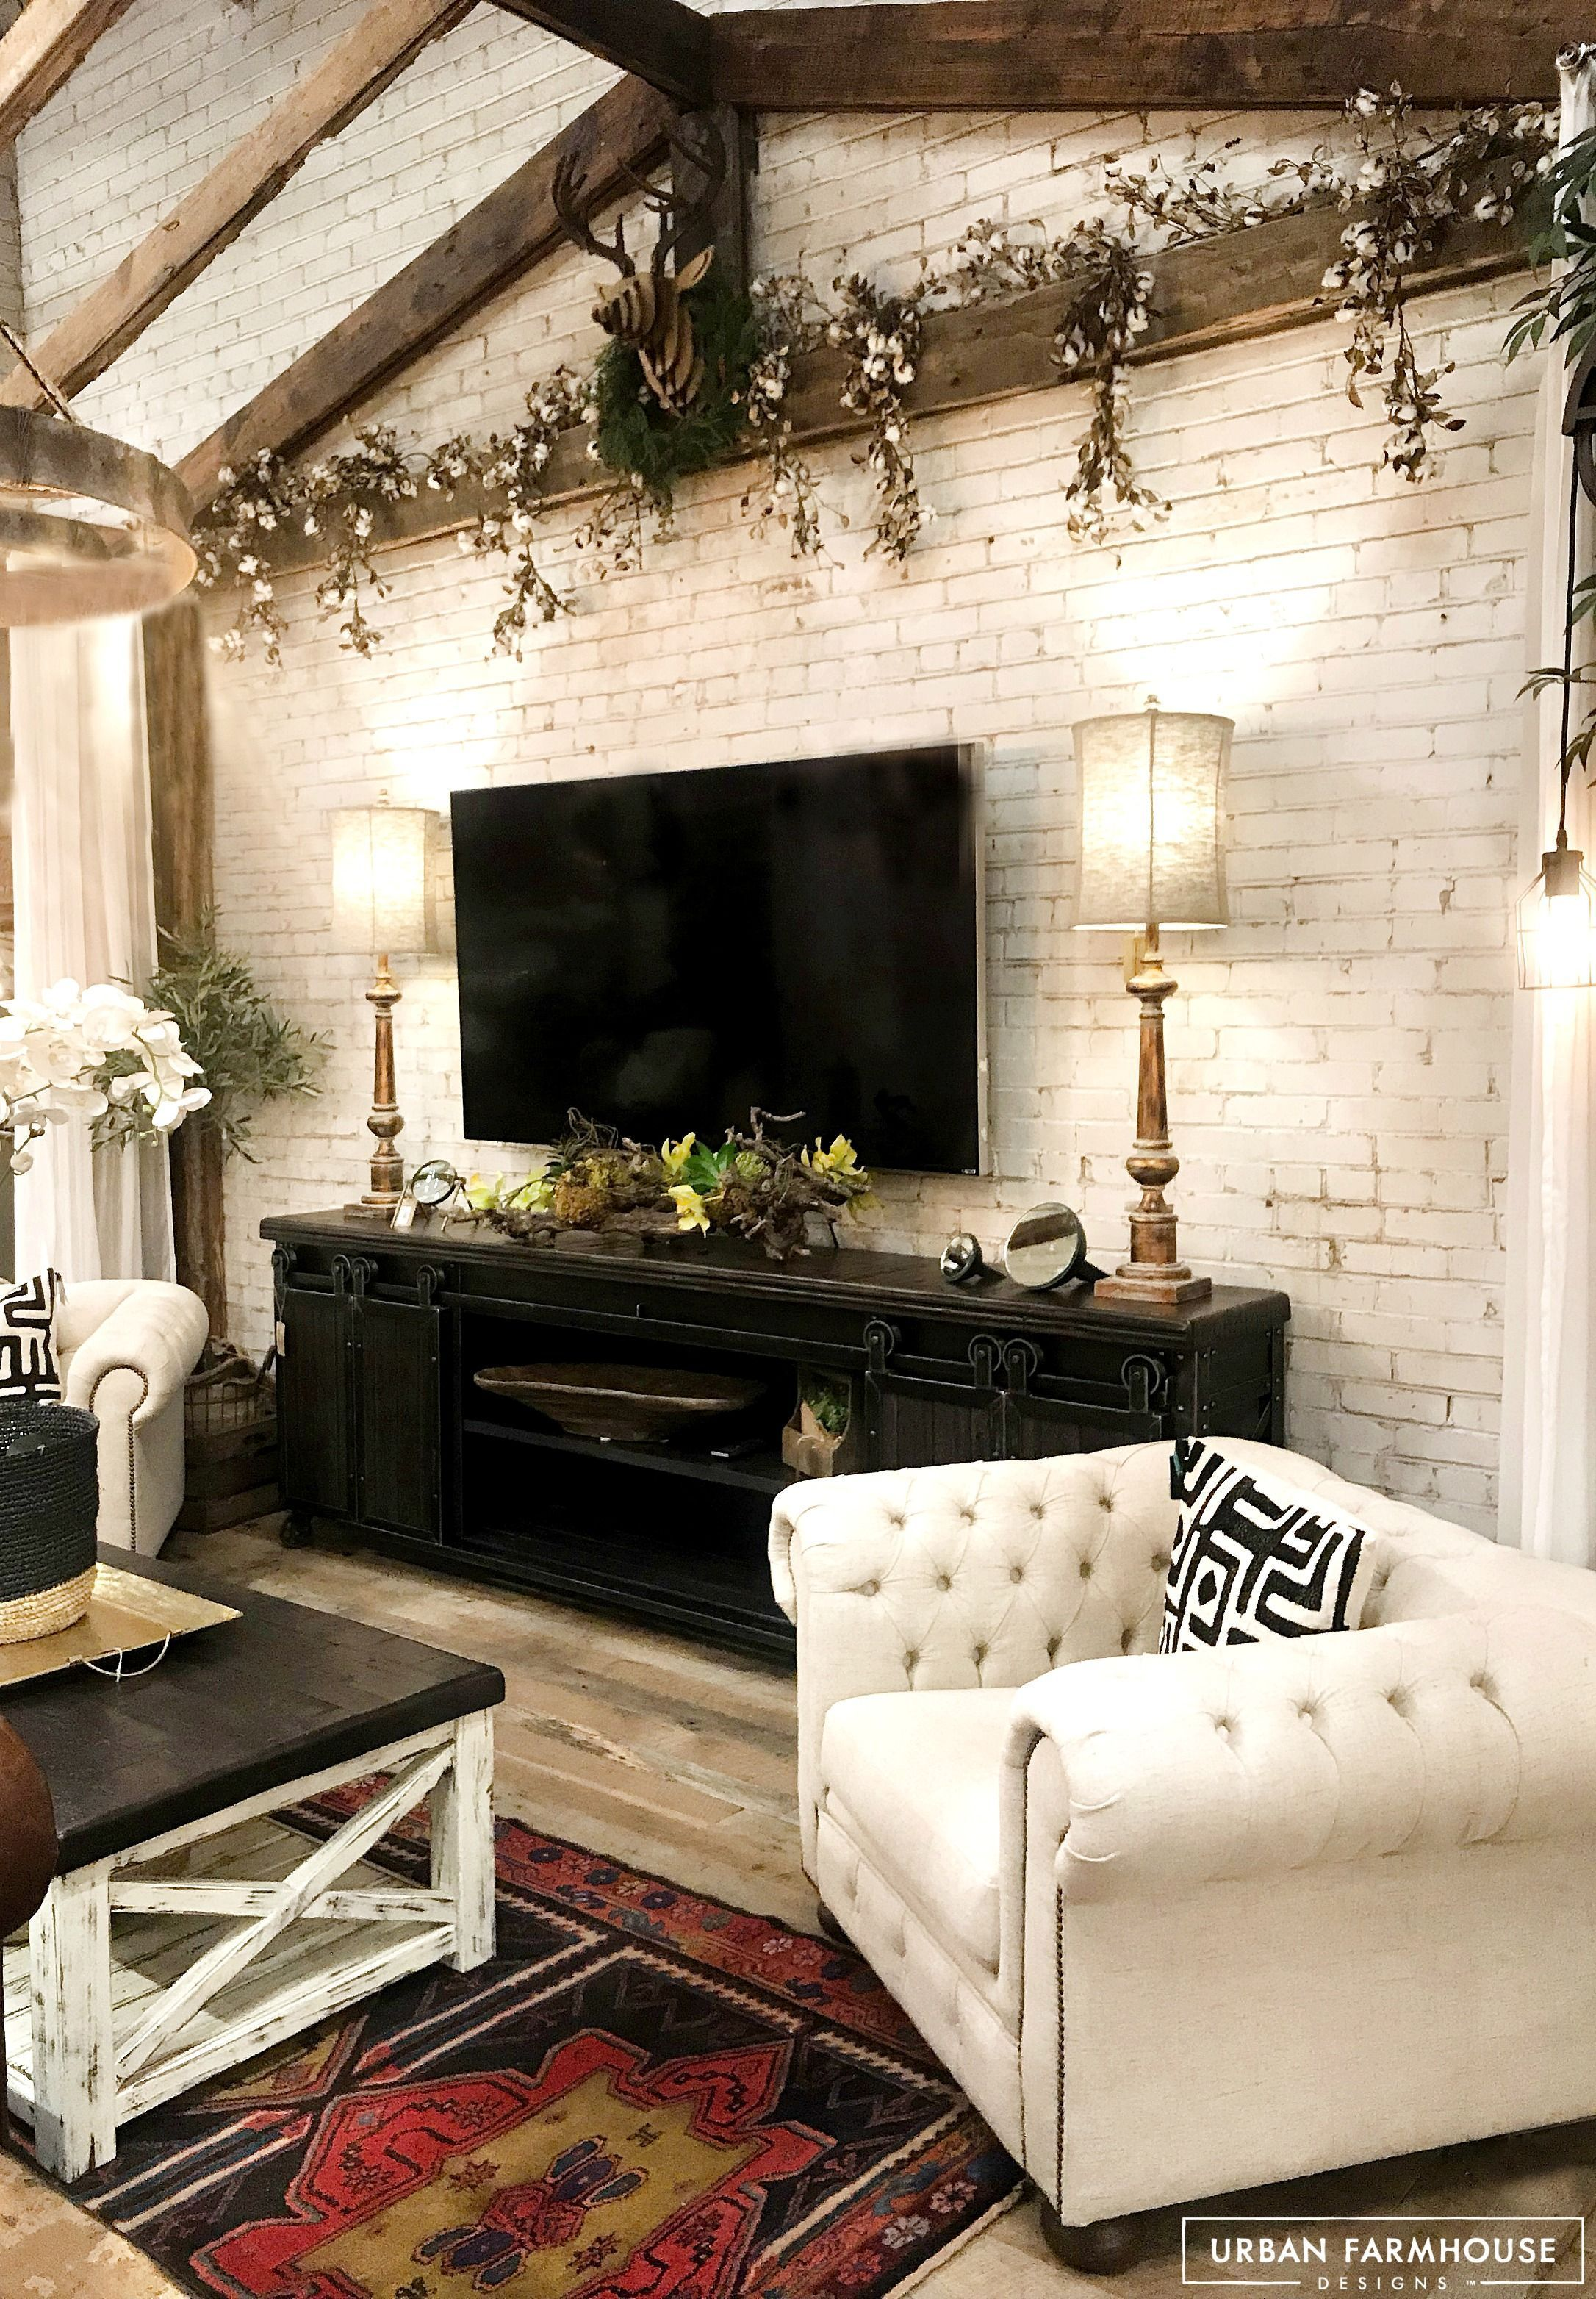 Love the lamps beside the hanging tv